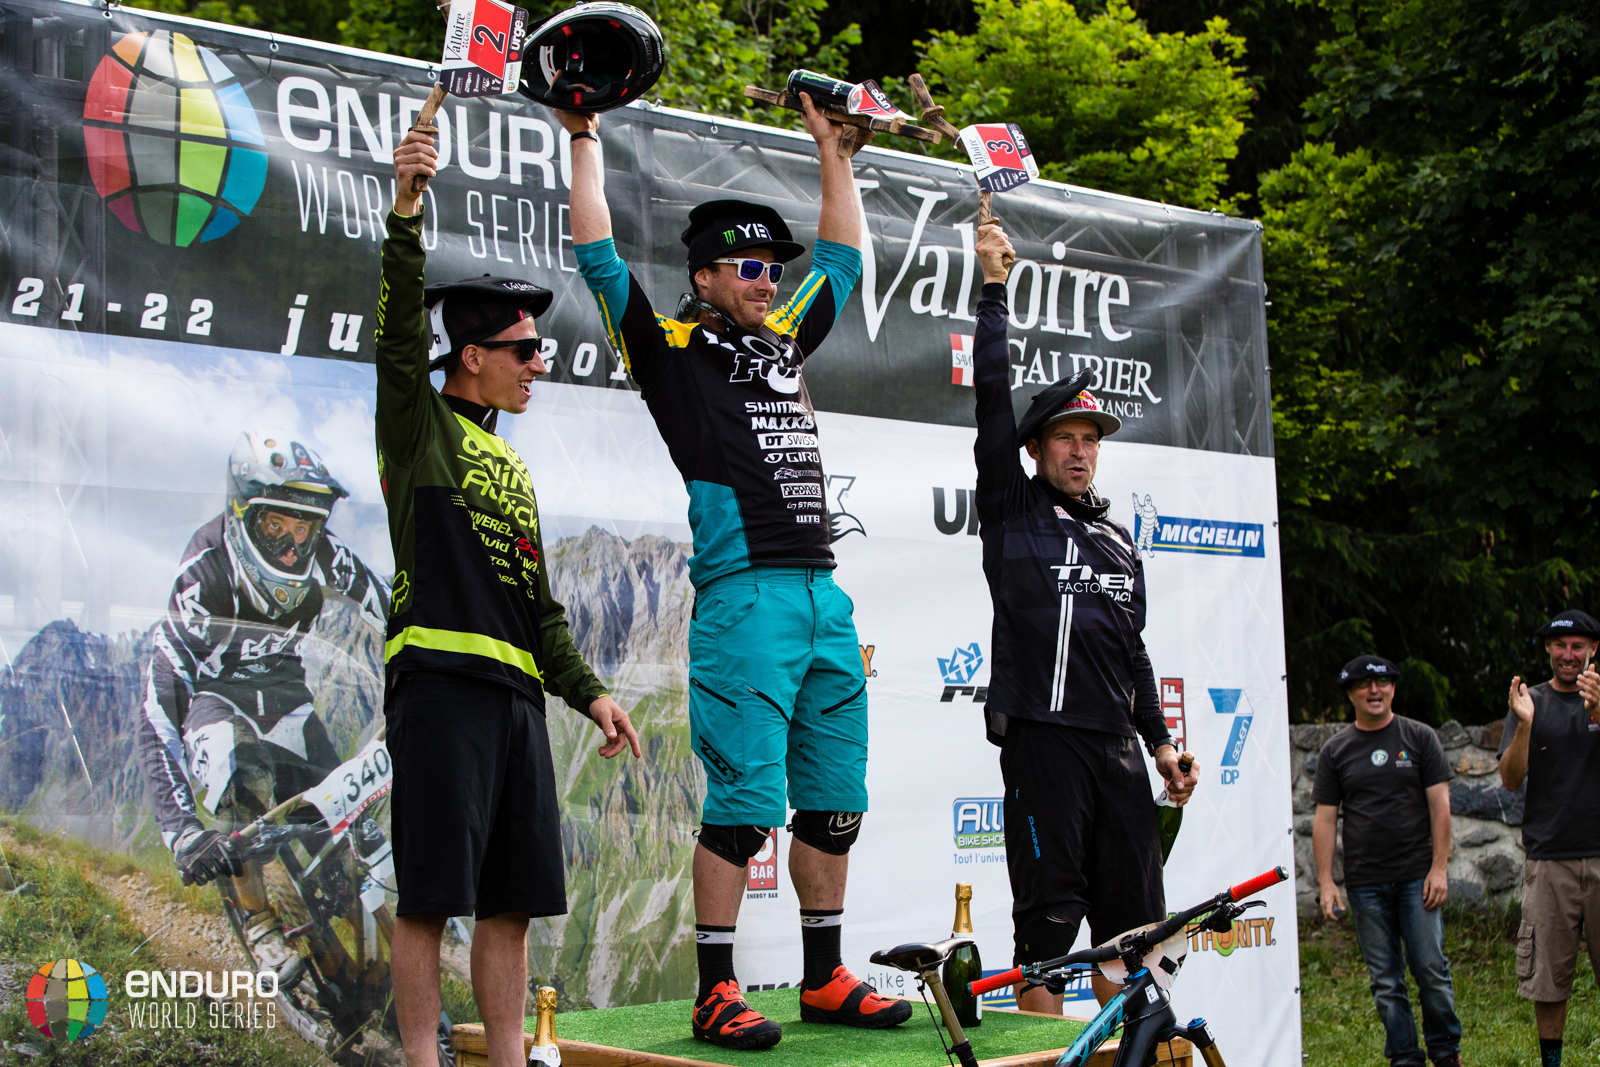 Mens podium, EWS round 3 2014, Valloire. Photo by Matt Wragg